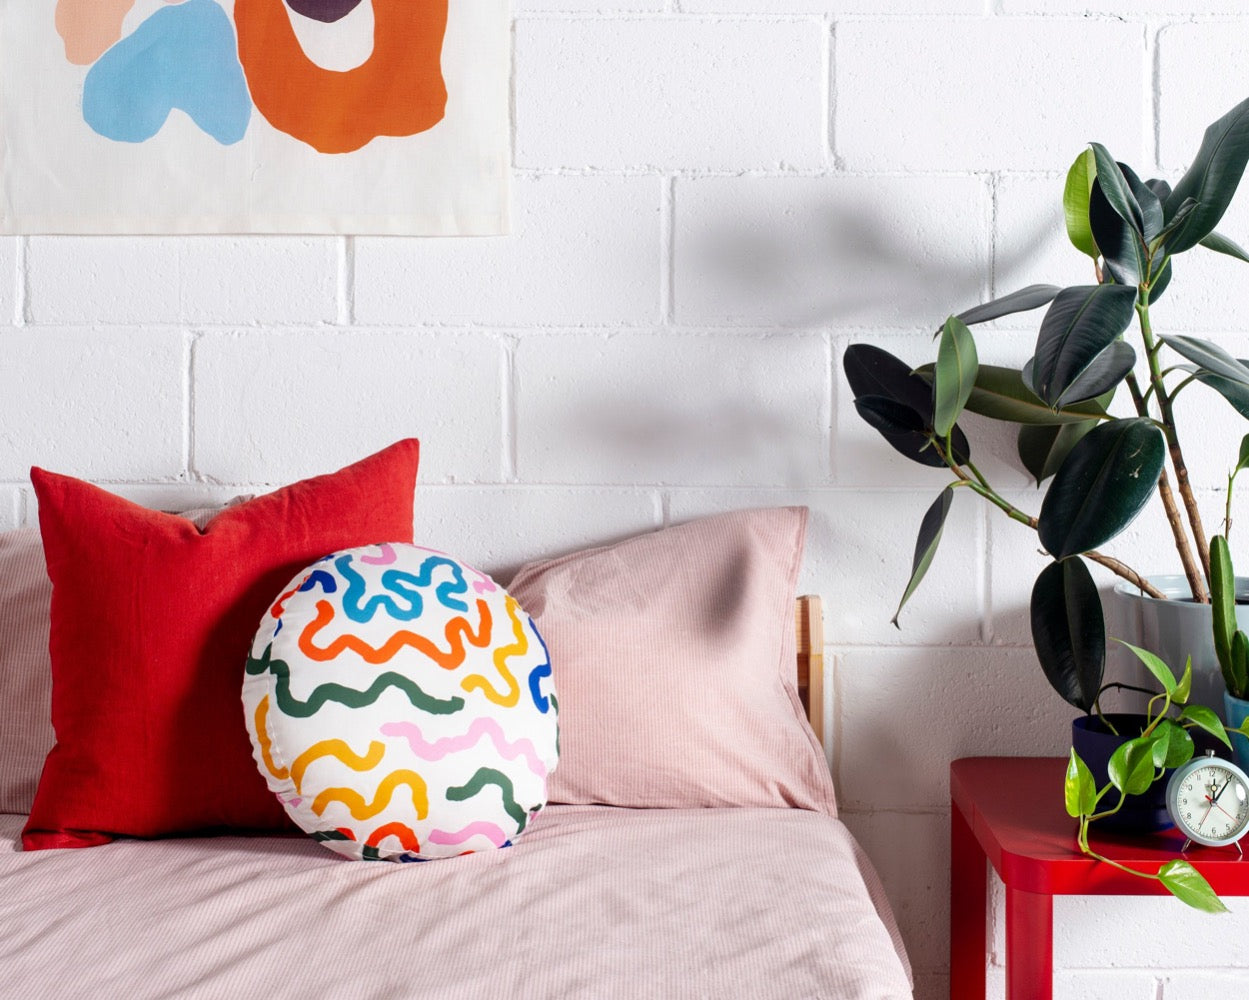 Image shows a circular pillow with thick colorful lines in bright colours. The curving lines appear on a white background in green, dark blue, sky blue, orange, yellow and pink. The Orb Pillow sits on a bed with a red pillow, the Play Wall Hanging sits above it and a plant sits to the right side of the image.